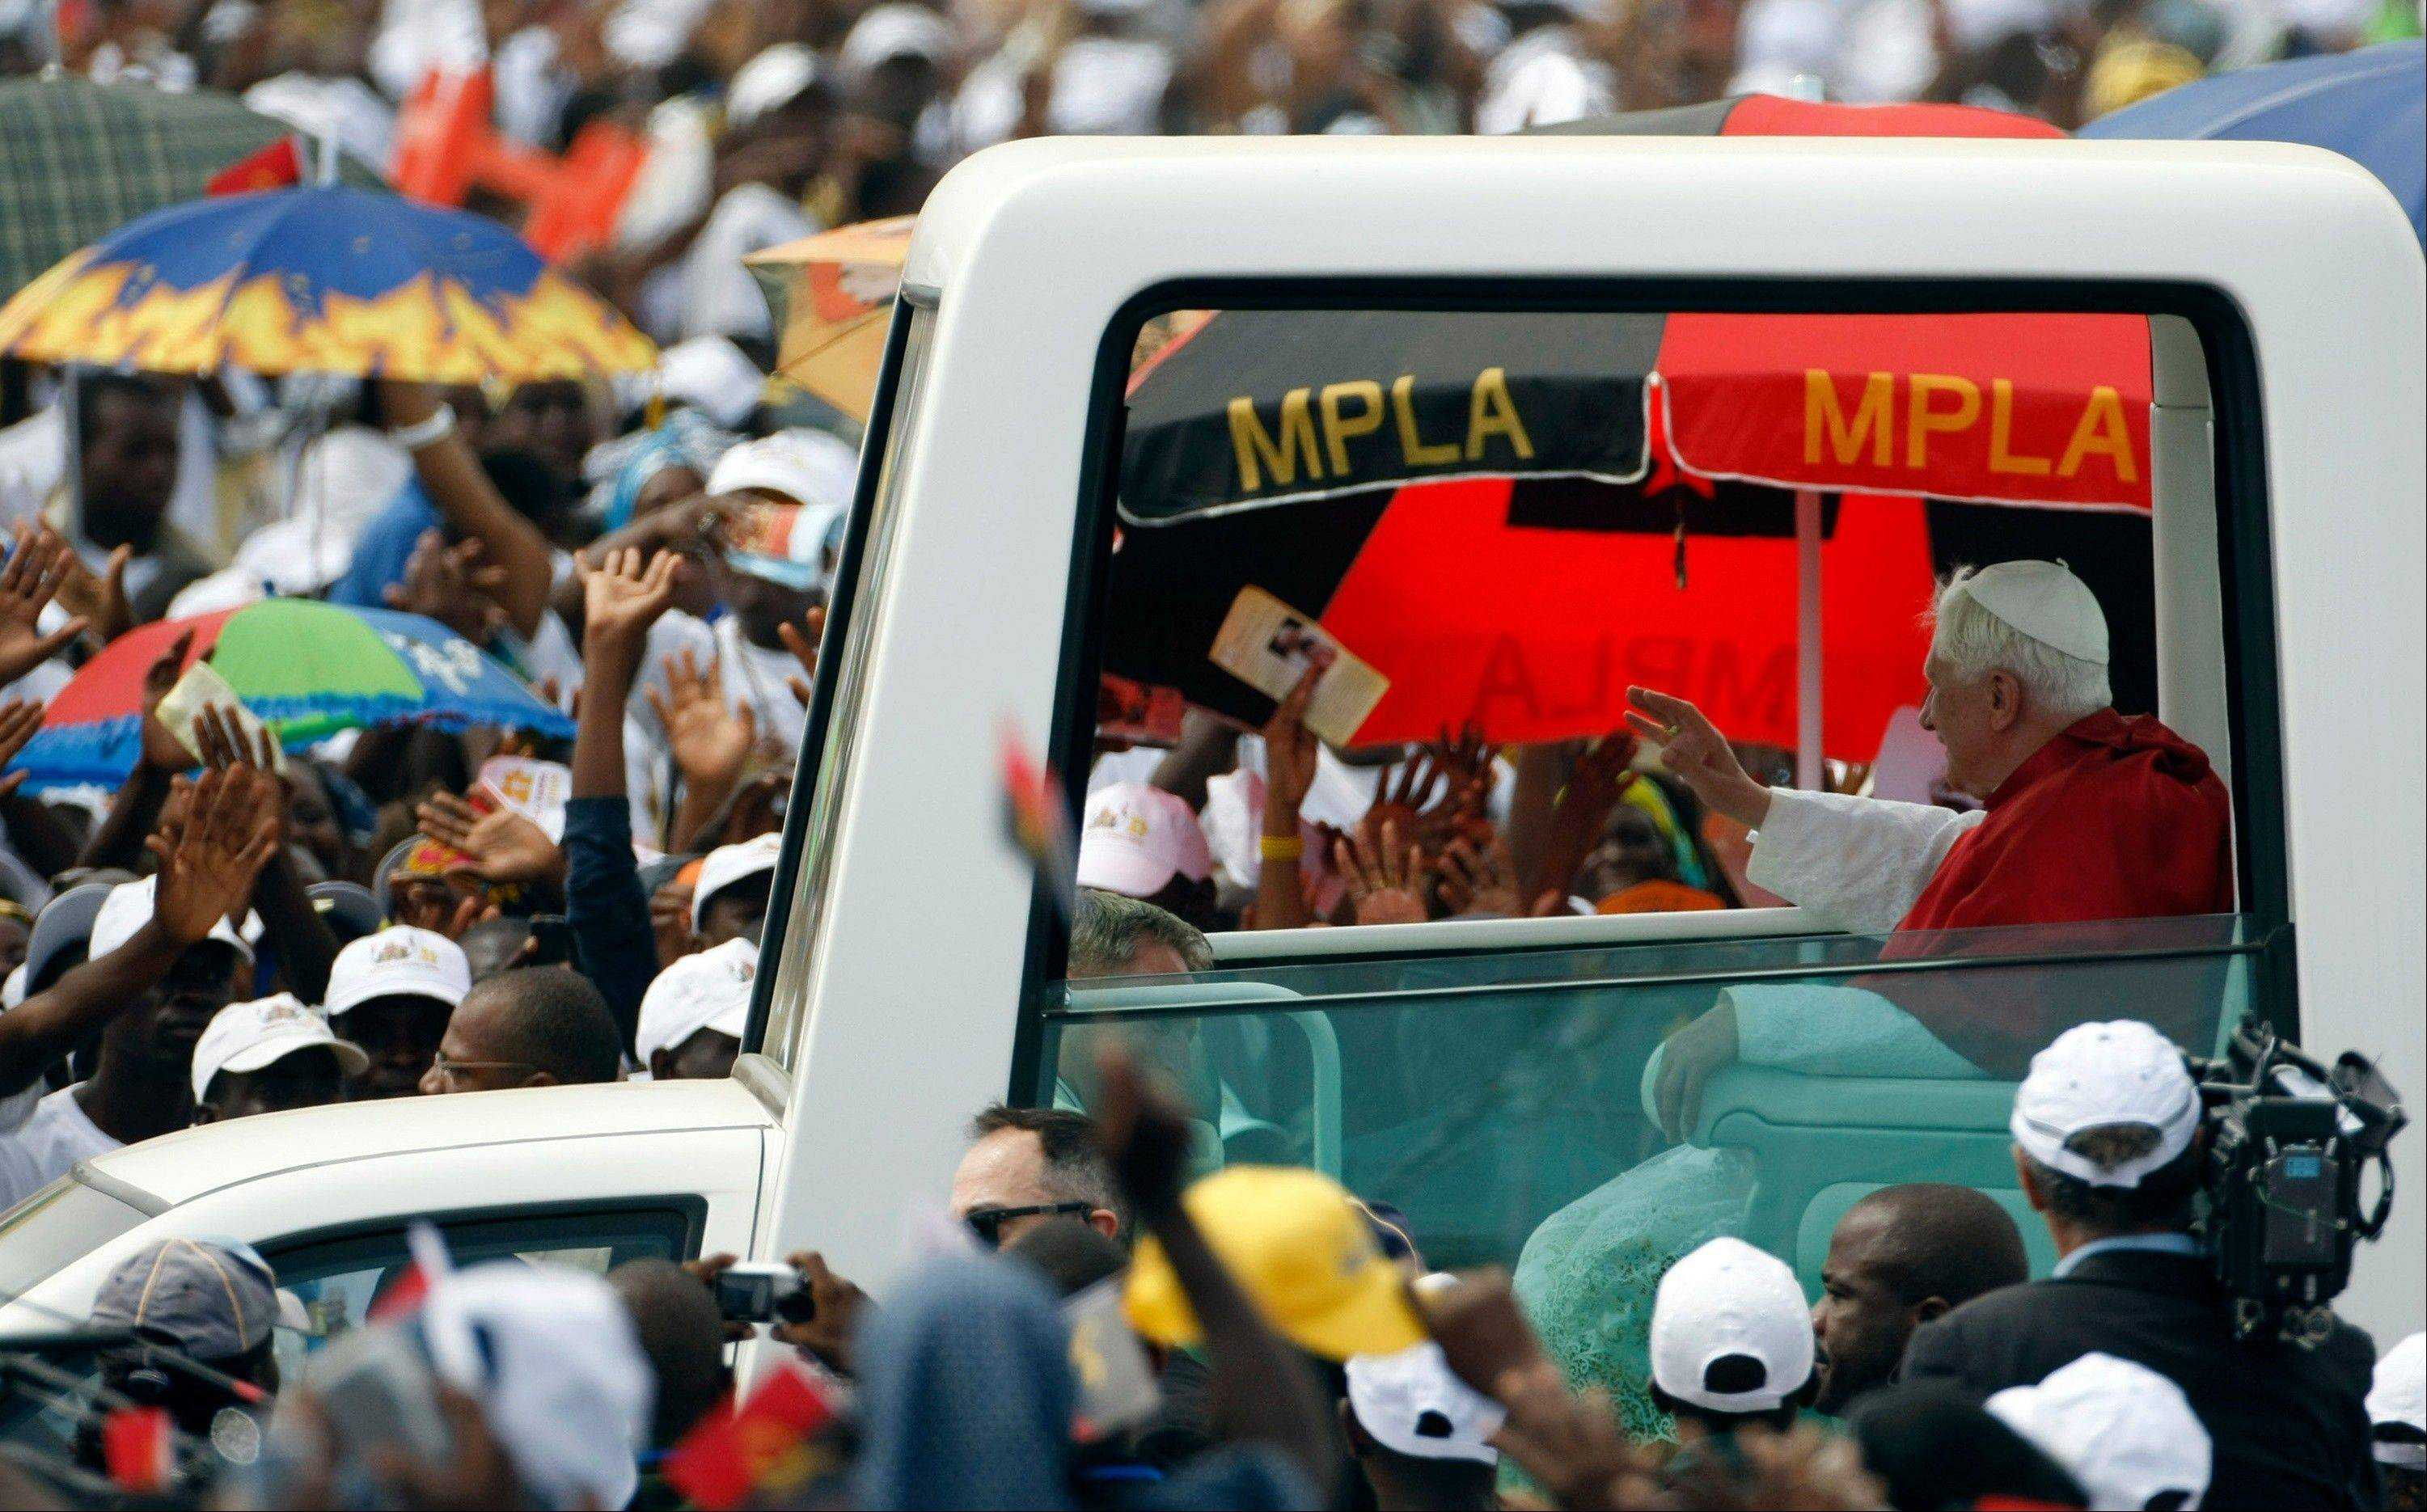 Pope Benedict XVI arrives in the popemobile to celebrate a Mass on the outskirts of Angola's seaside capital, Luanda.